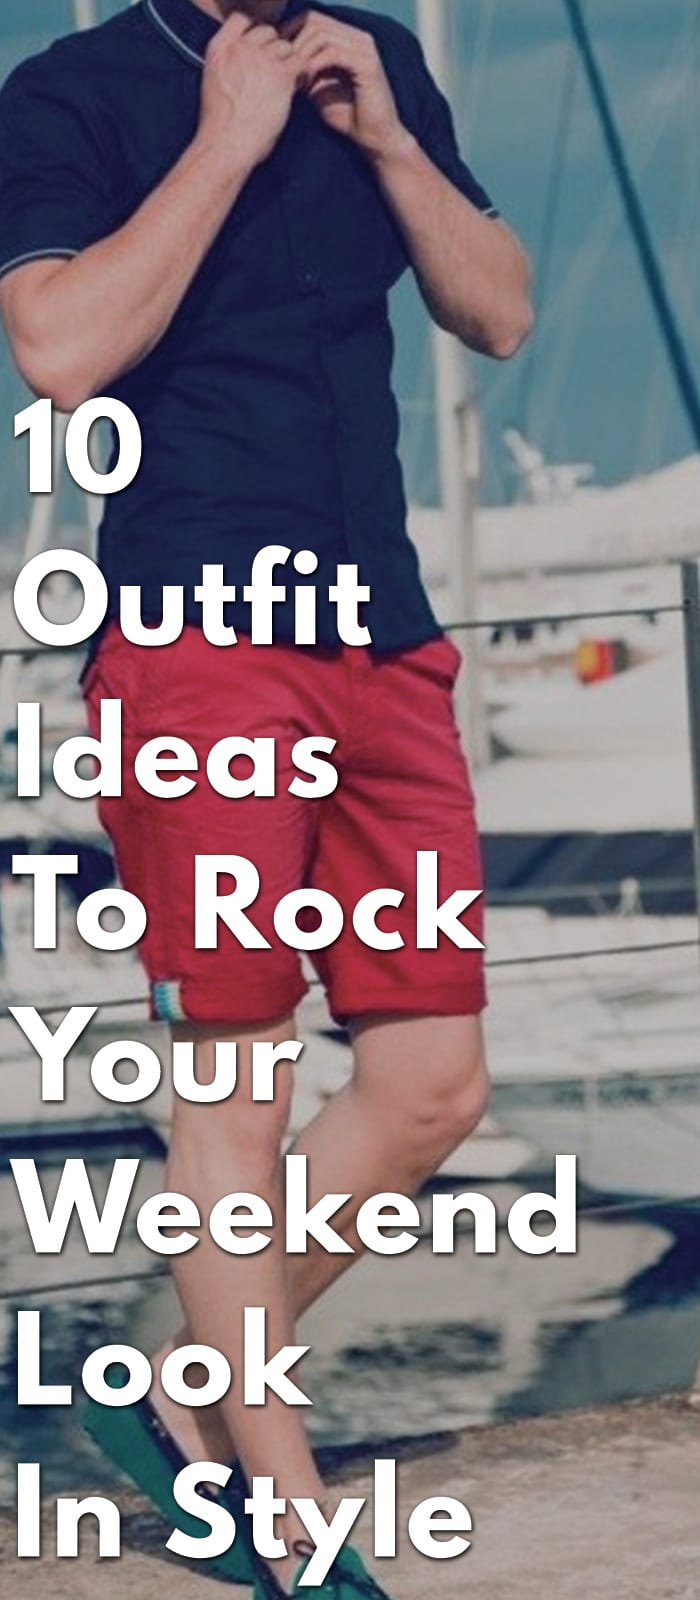 10-Outfit-Ideas-To-Rock-Your-Weekend-Look-In-Style